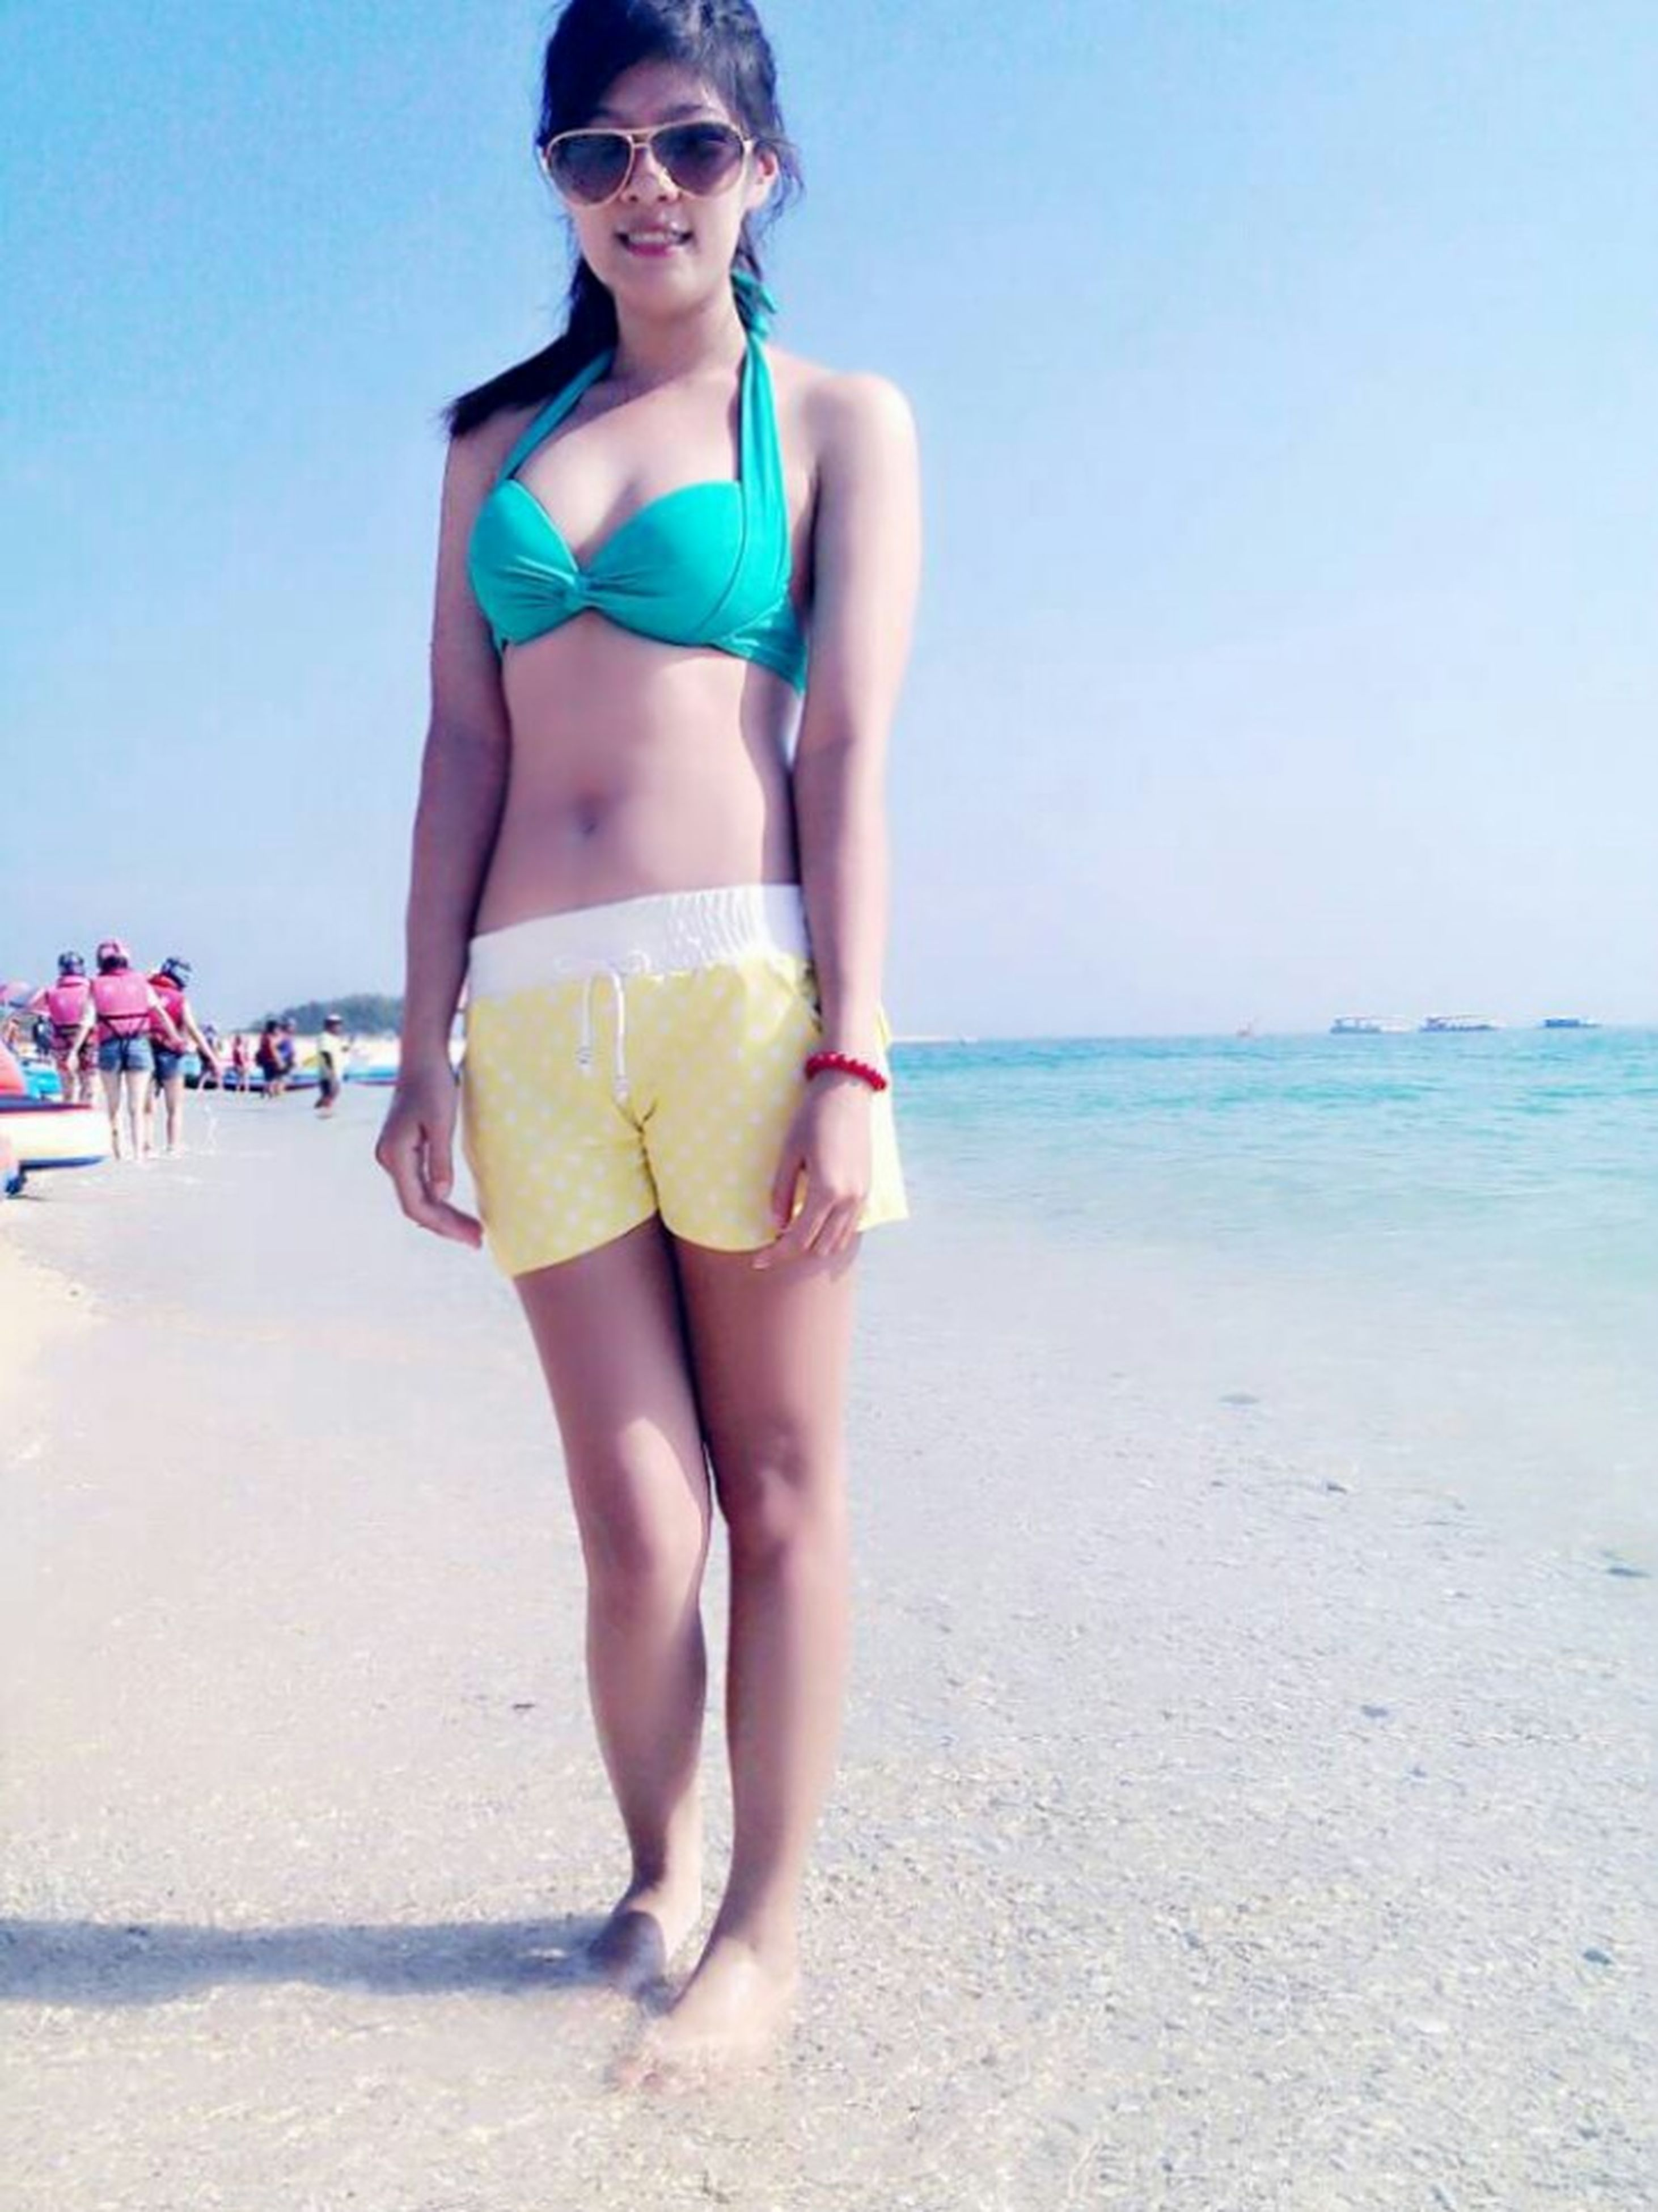 beach, young adult, sea, lifestyles, person, young women, leisure activity, sand, horizon over water, shore, water, front view, casual clothing, full length, vacations, portrait, standing